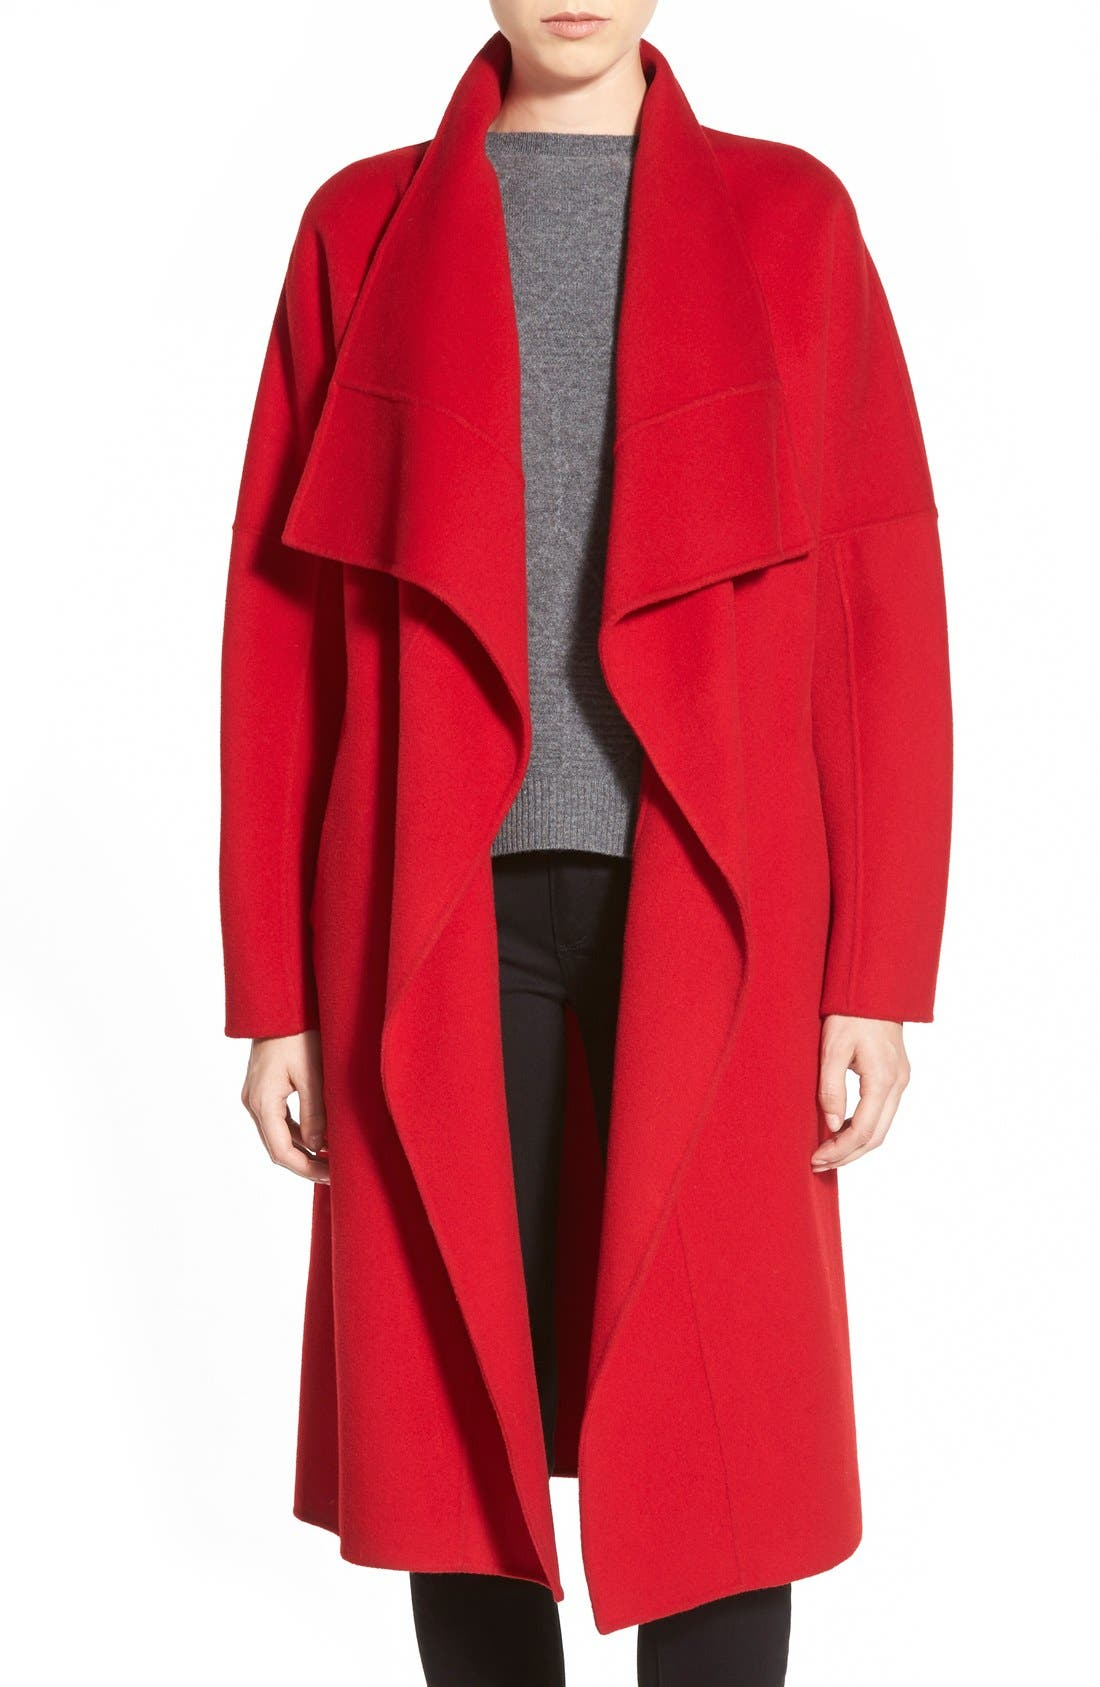 Alternate Image 1 Selected - Badgley Mischka 'Audrey' Long Double Face Wrap Coat